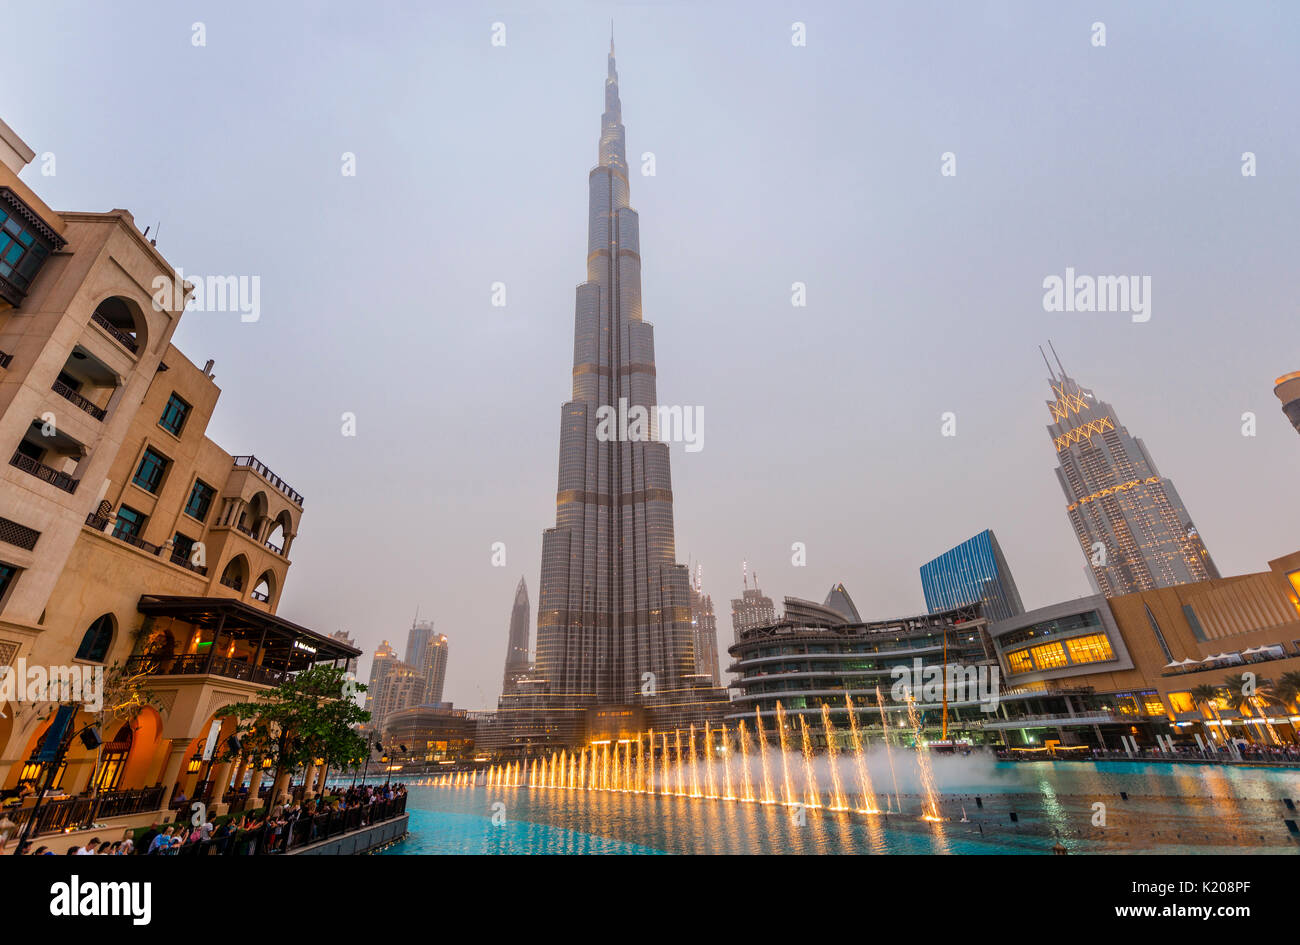 Burj Khalifa, artificial lake with lighted fountain, blue hour, Dubai, Emirate Dubai, United Arab Emirates - Stock Image